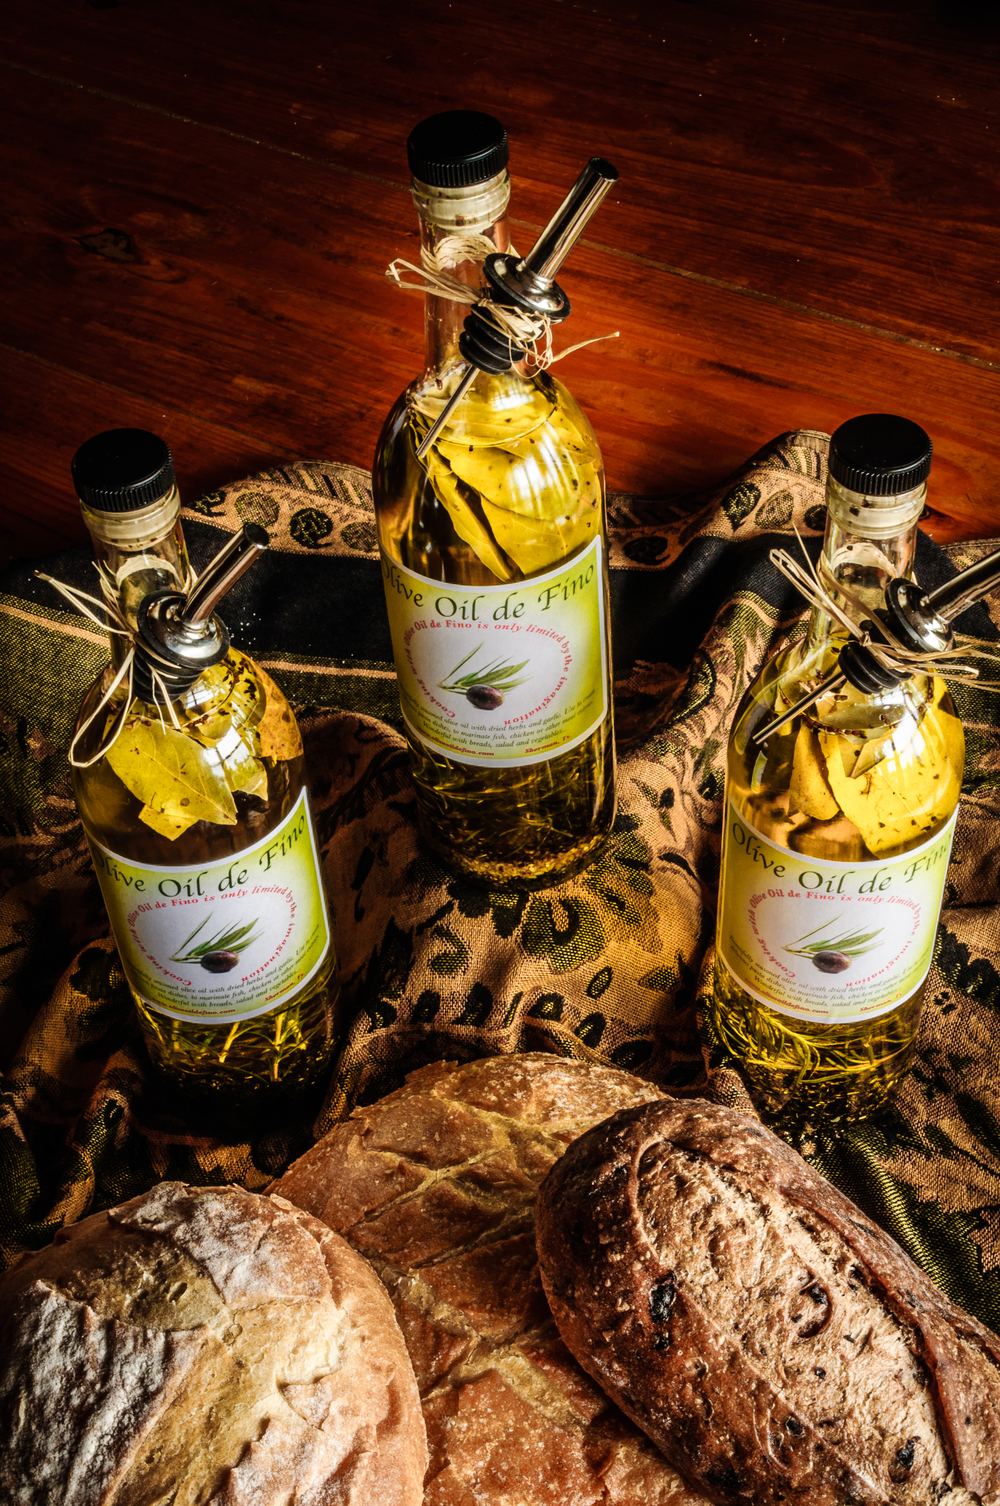 Olive Oil de Fino Bottles